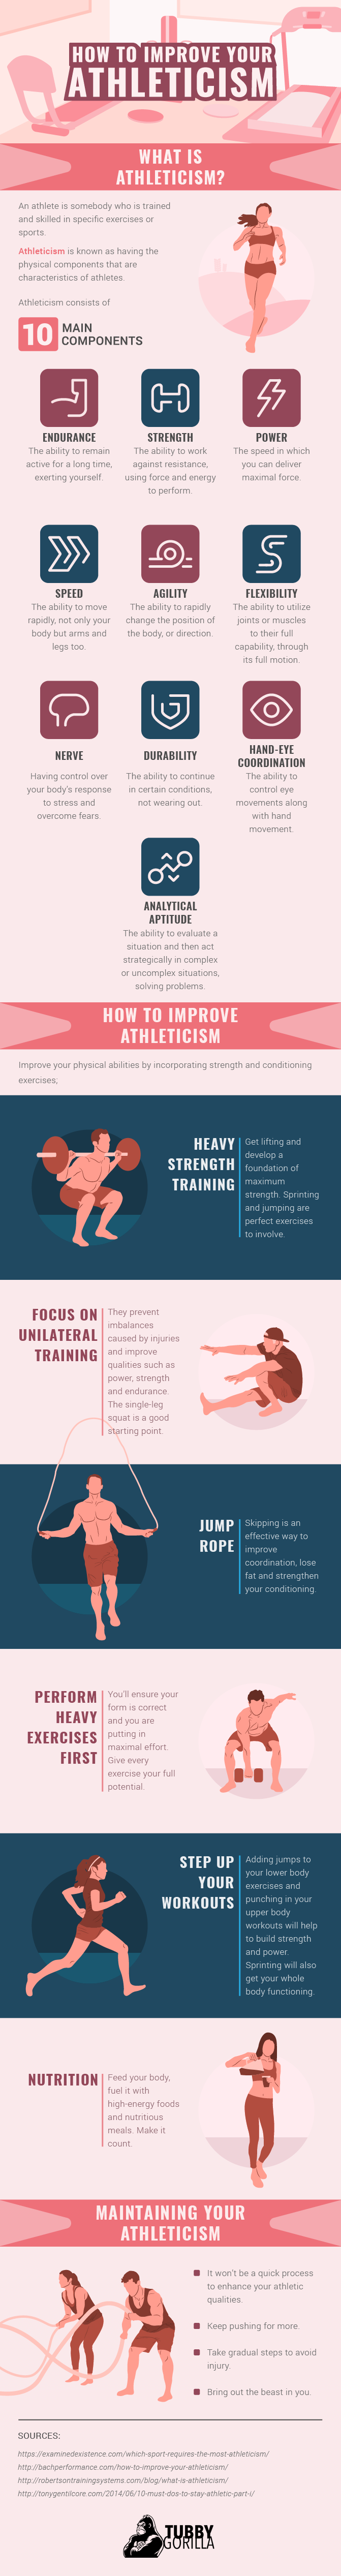 How to improve athleticism infographic